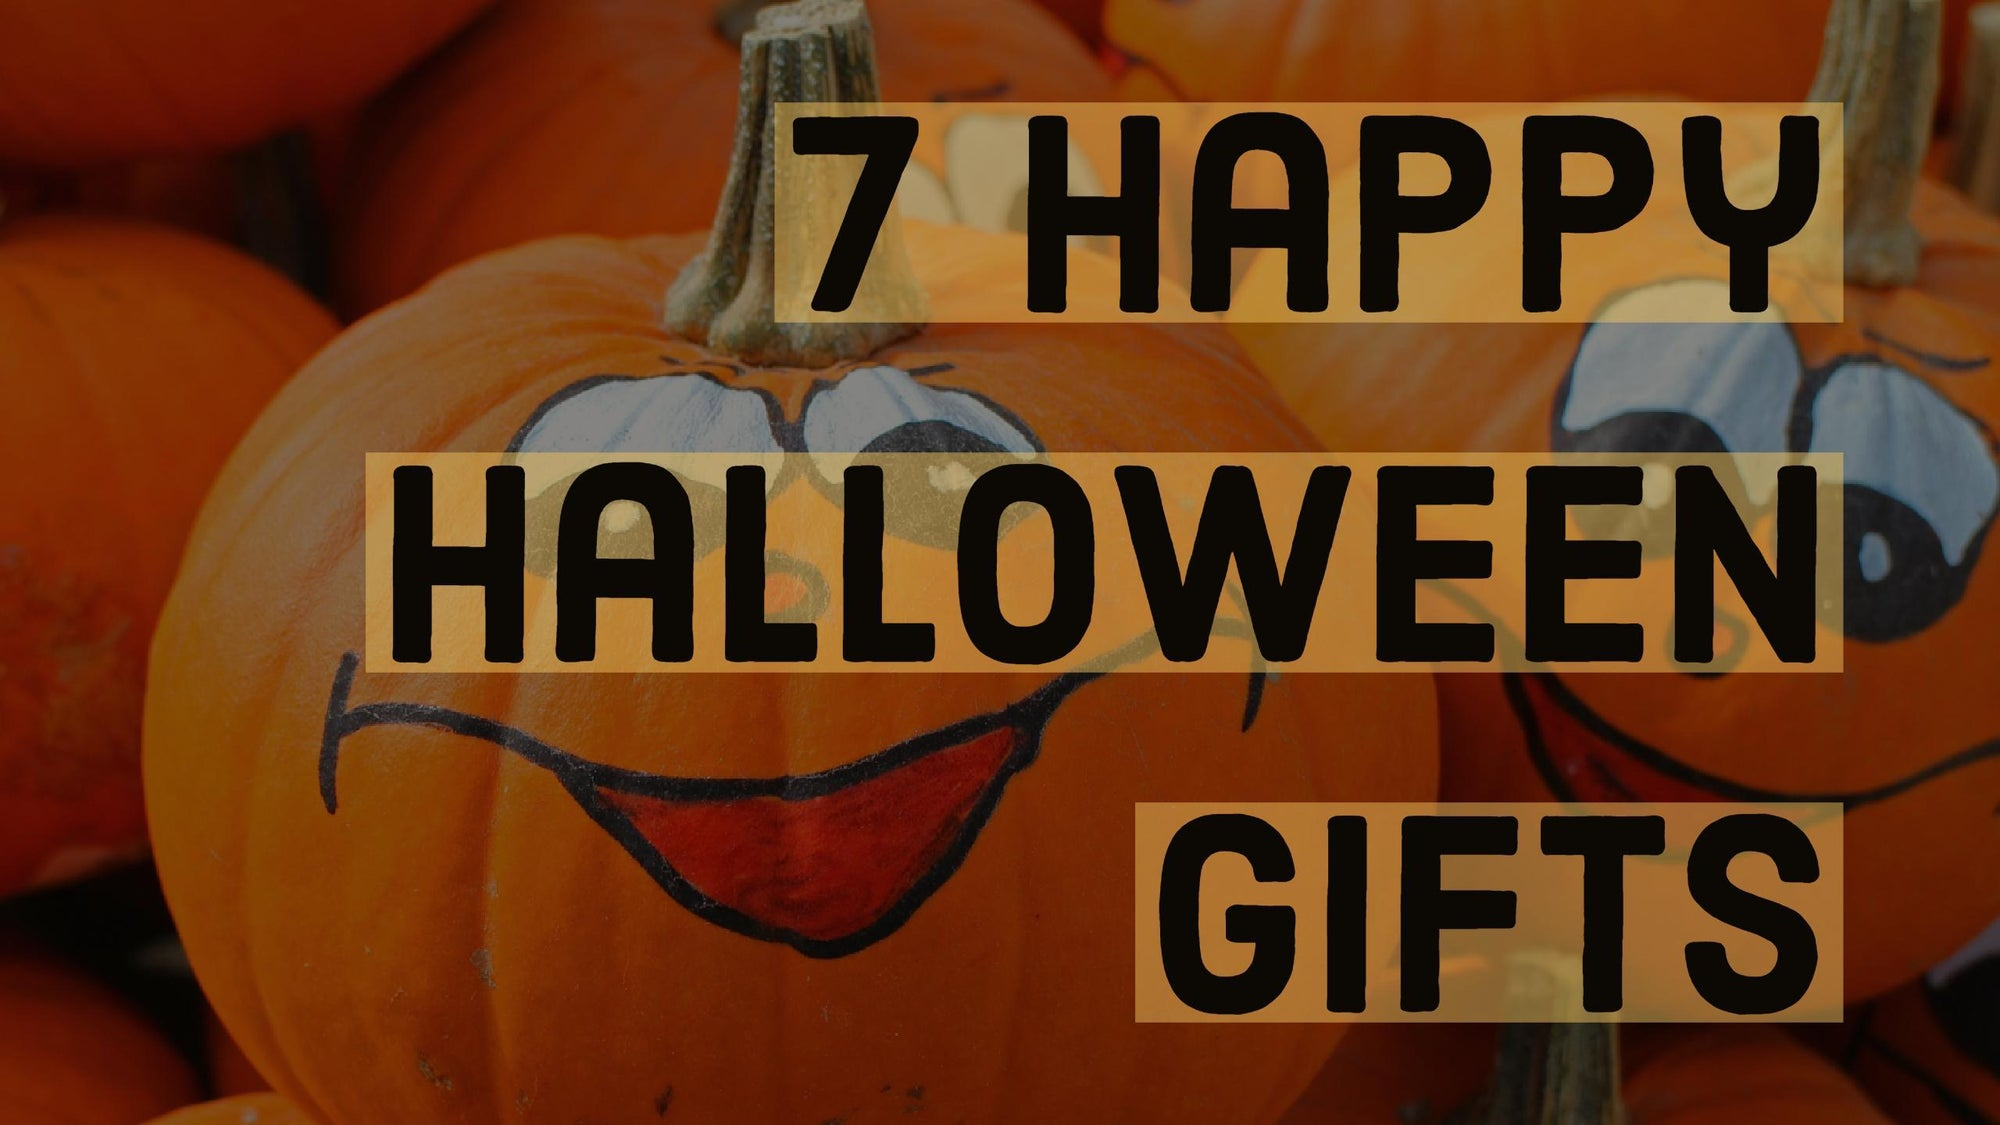 7 Happy Halloween Gifts